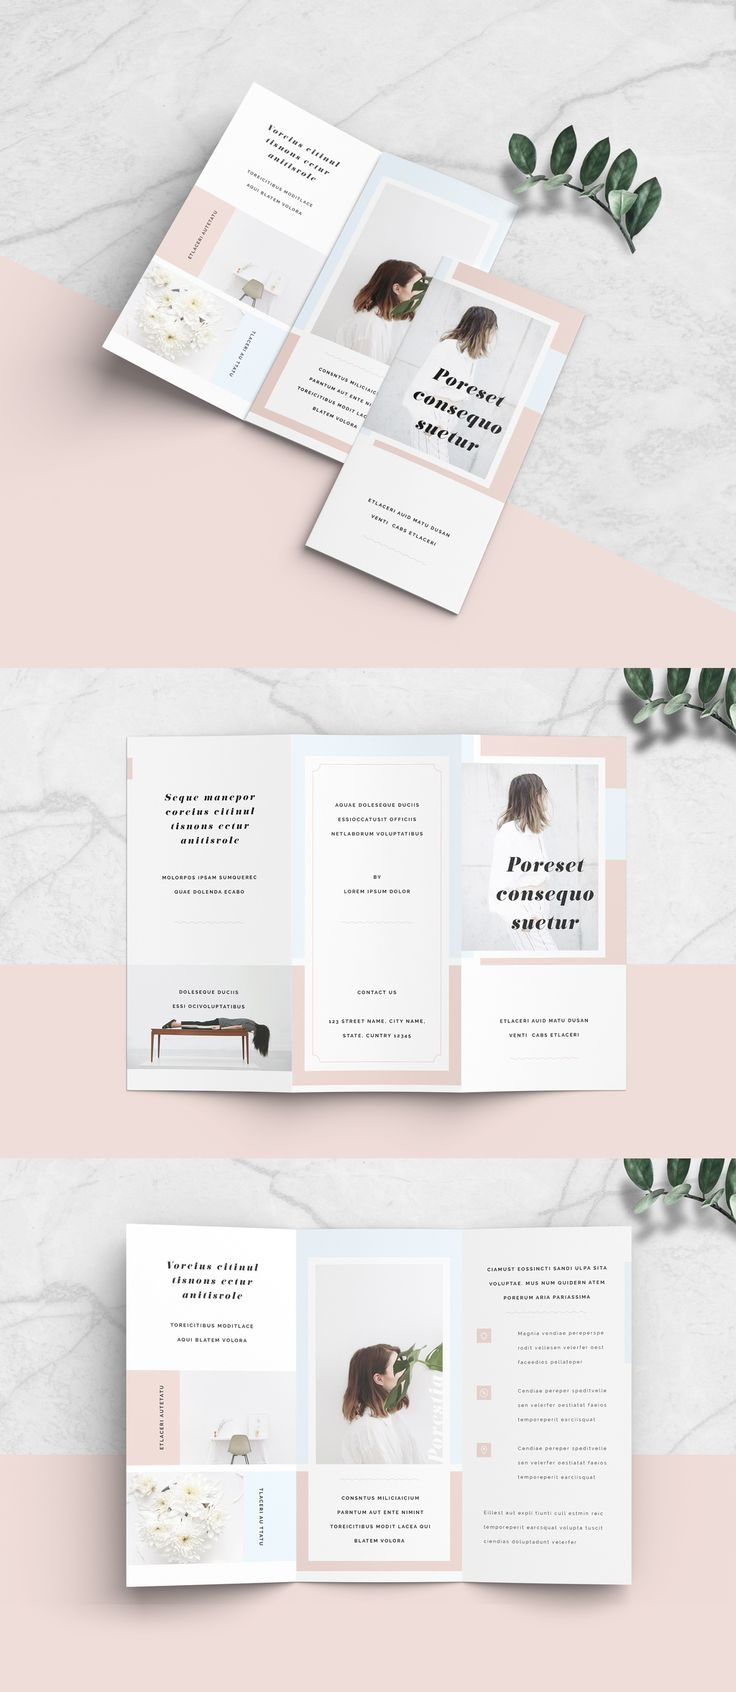 Minimalist Brochure Layout.  #brochure #booklet #flyer #layout #template #design #fold #trifold #fashion #clean #portfolio #modern #lifestyle #blog #elegant #pastel #minimal #minimalist #pink #blue #advertising #customize #hipster #size #paper #print #sample #cmyk #margin #border #marks #bleed #trim #crop #leaflet #pamphlet #proposal #handout #informational #publishing #branding #business #corporate #company #templates #indd #indt #indesign #minimalist brochure layout